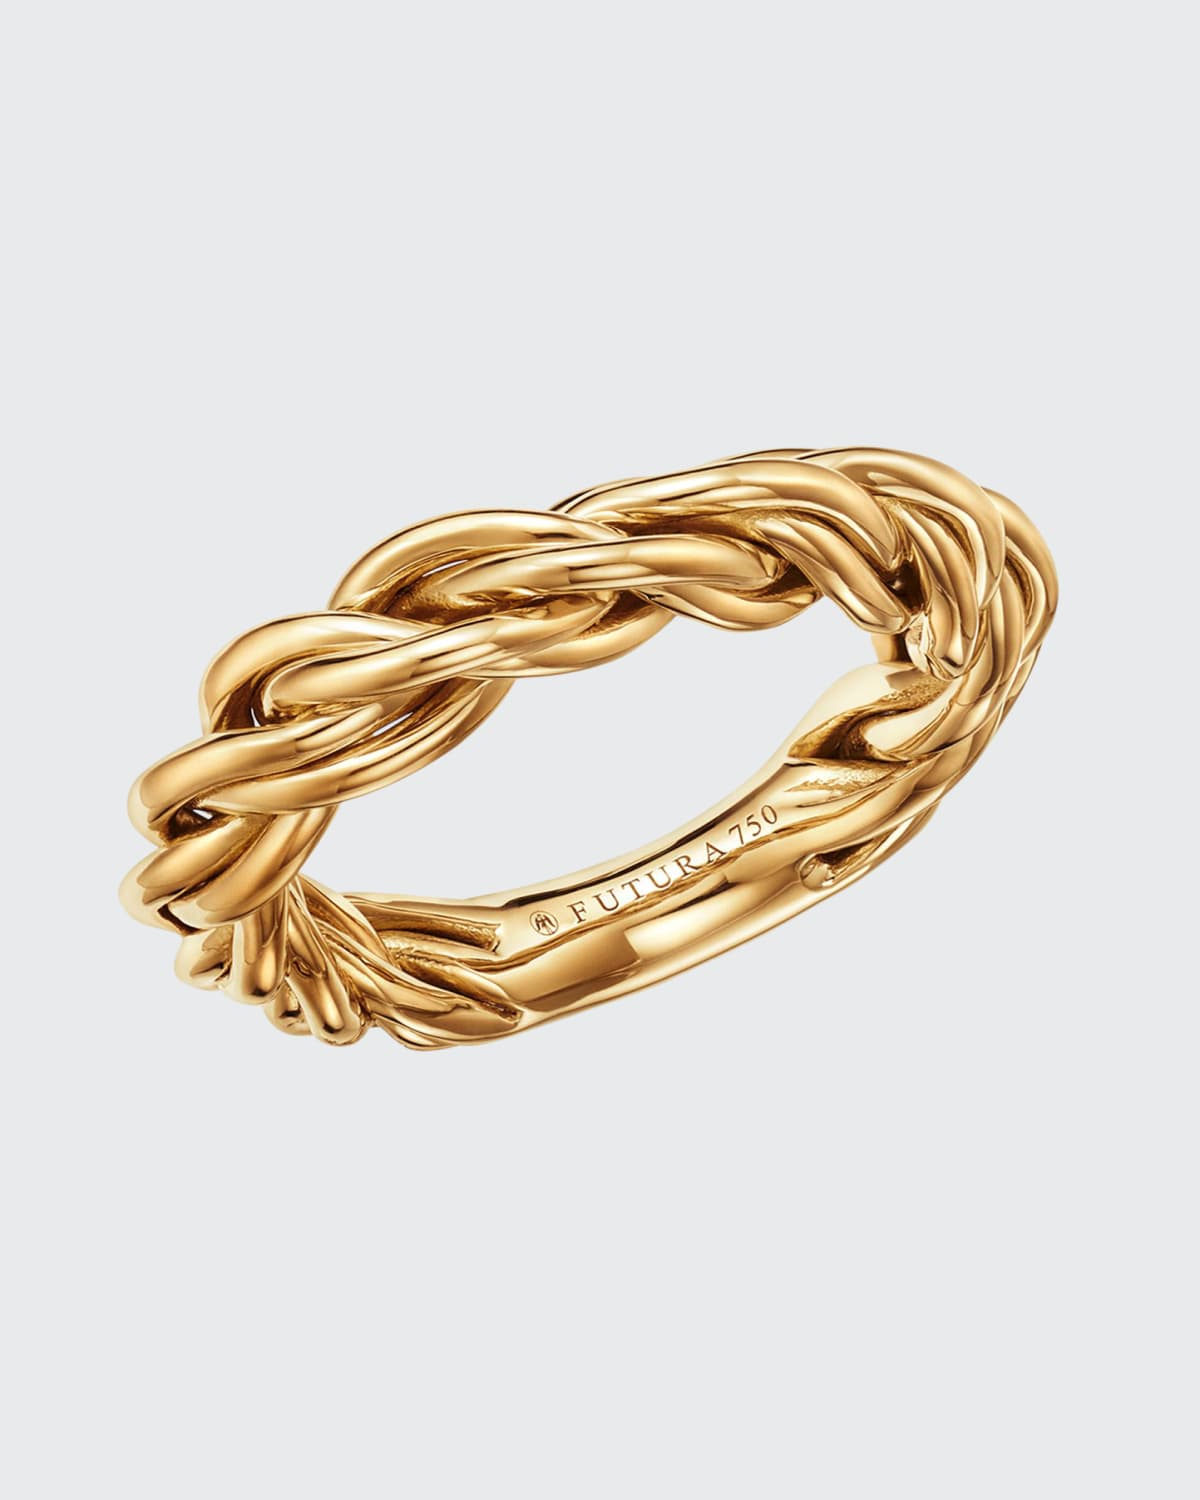 Astrid Ring in 18K Fairmined Gold